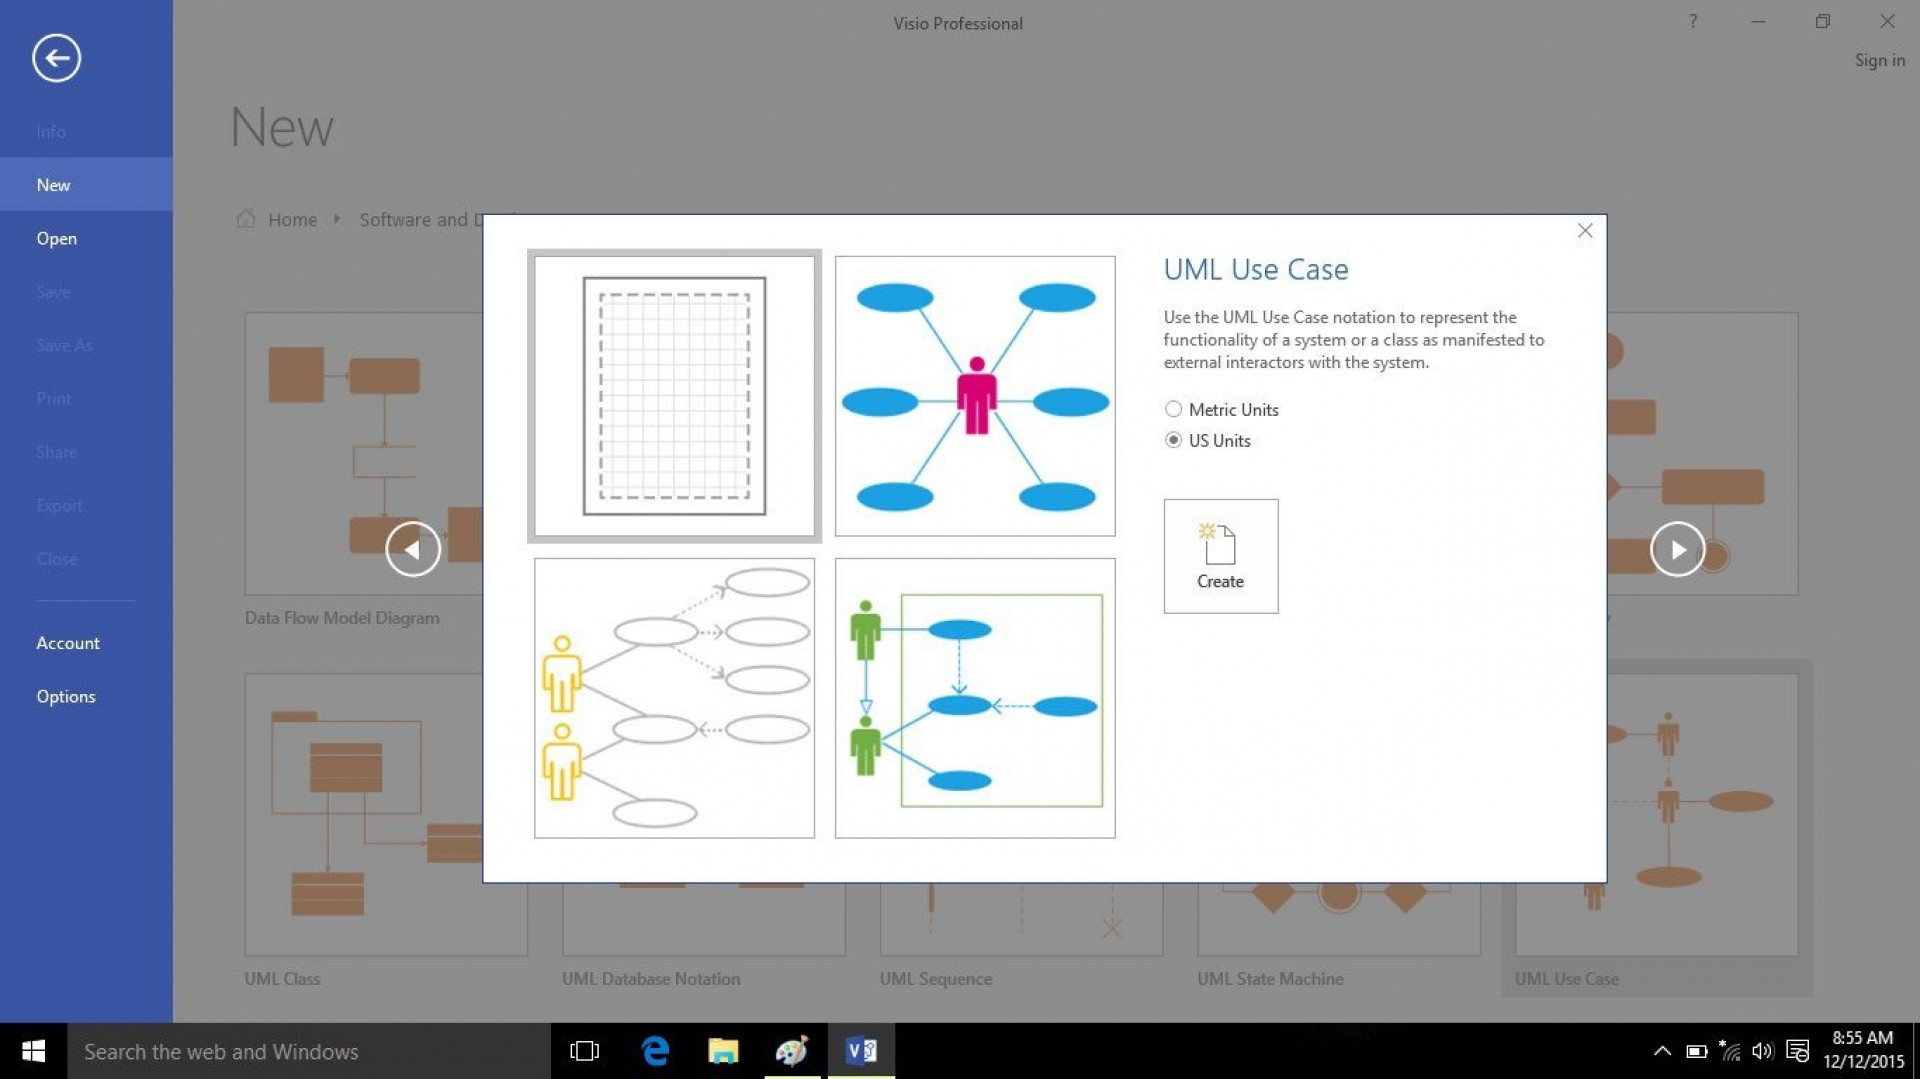 009 Awful How To Draw Use Case Diagram In Microsoft Word 2007 Inspiration 1920